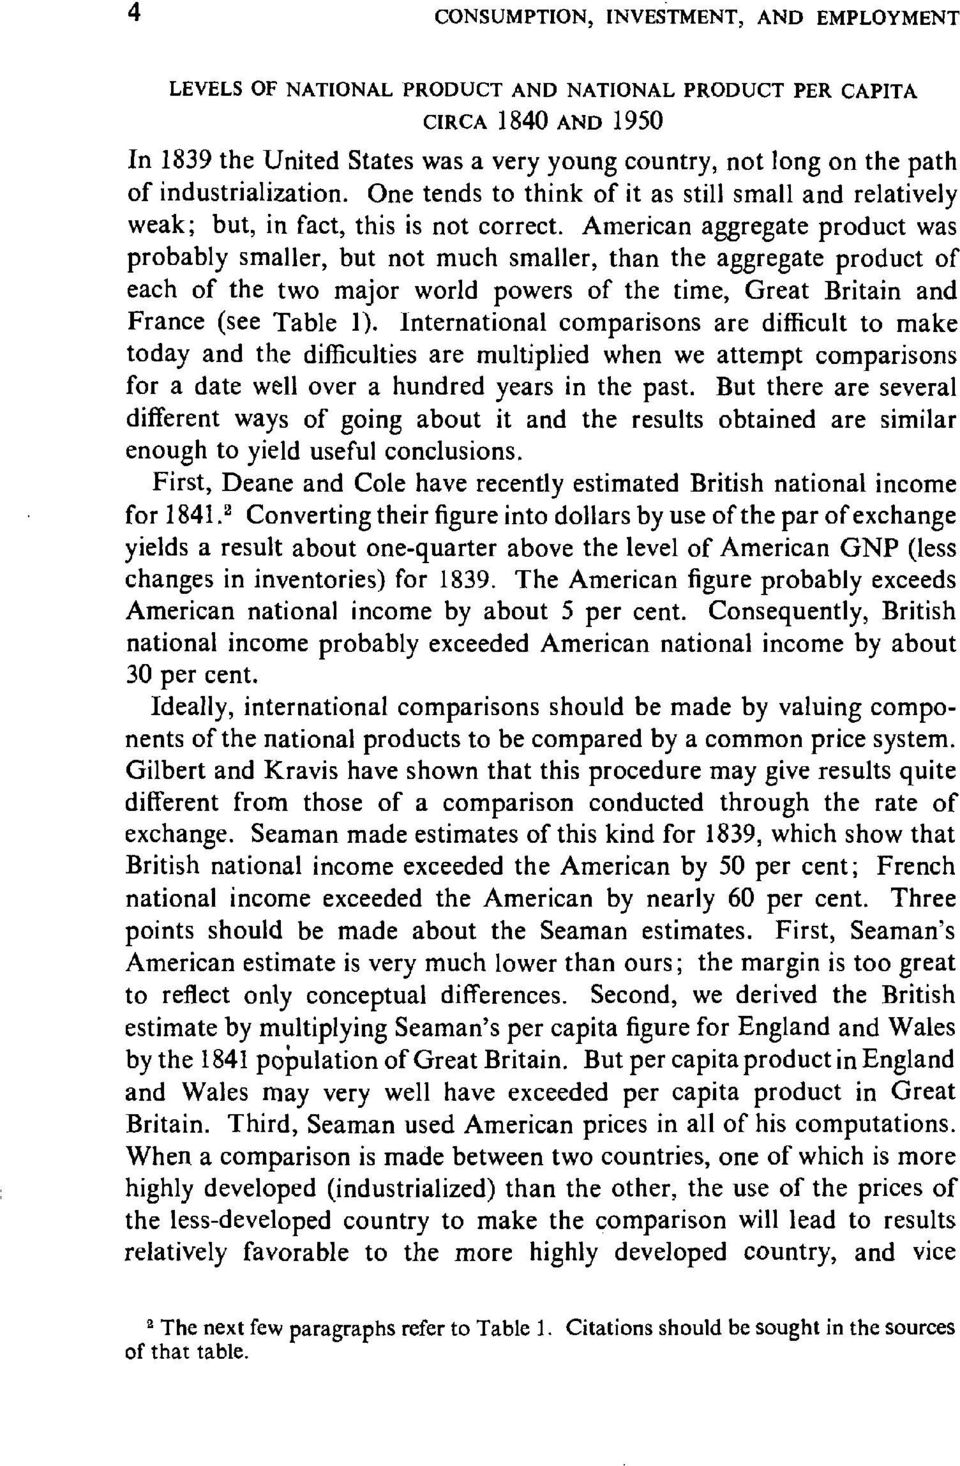 American aggregate product was probably smaller, but not much smaller, than the aggregate product of each of the two major world powers of the time, Great Britain and France (see Table 1).